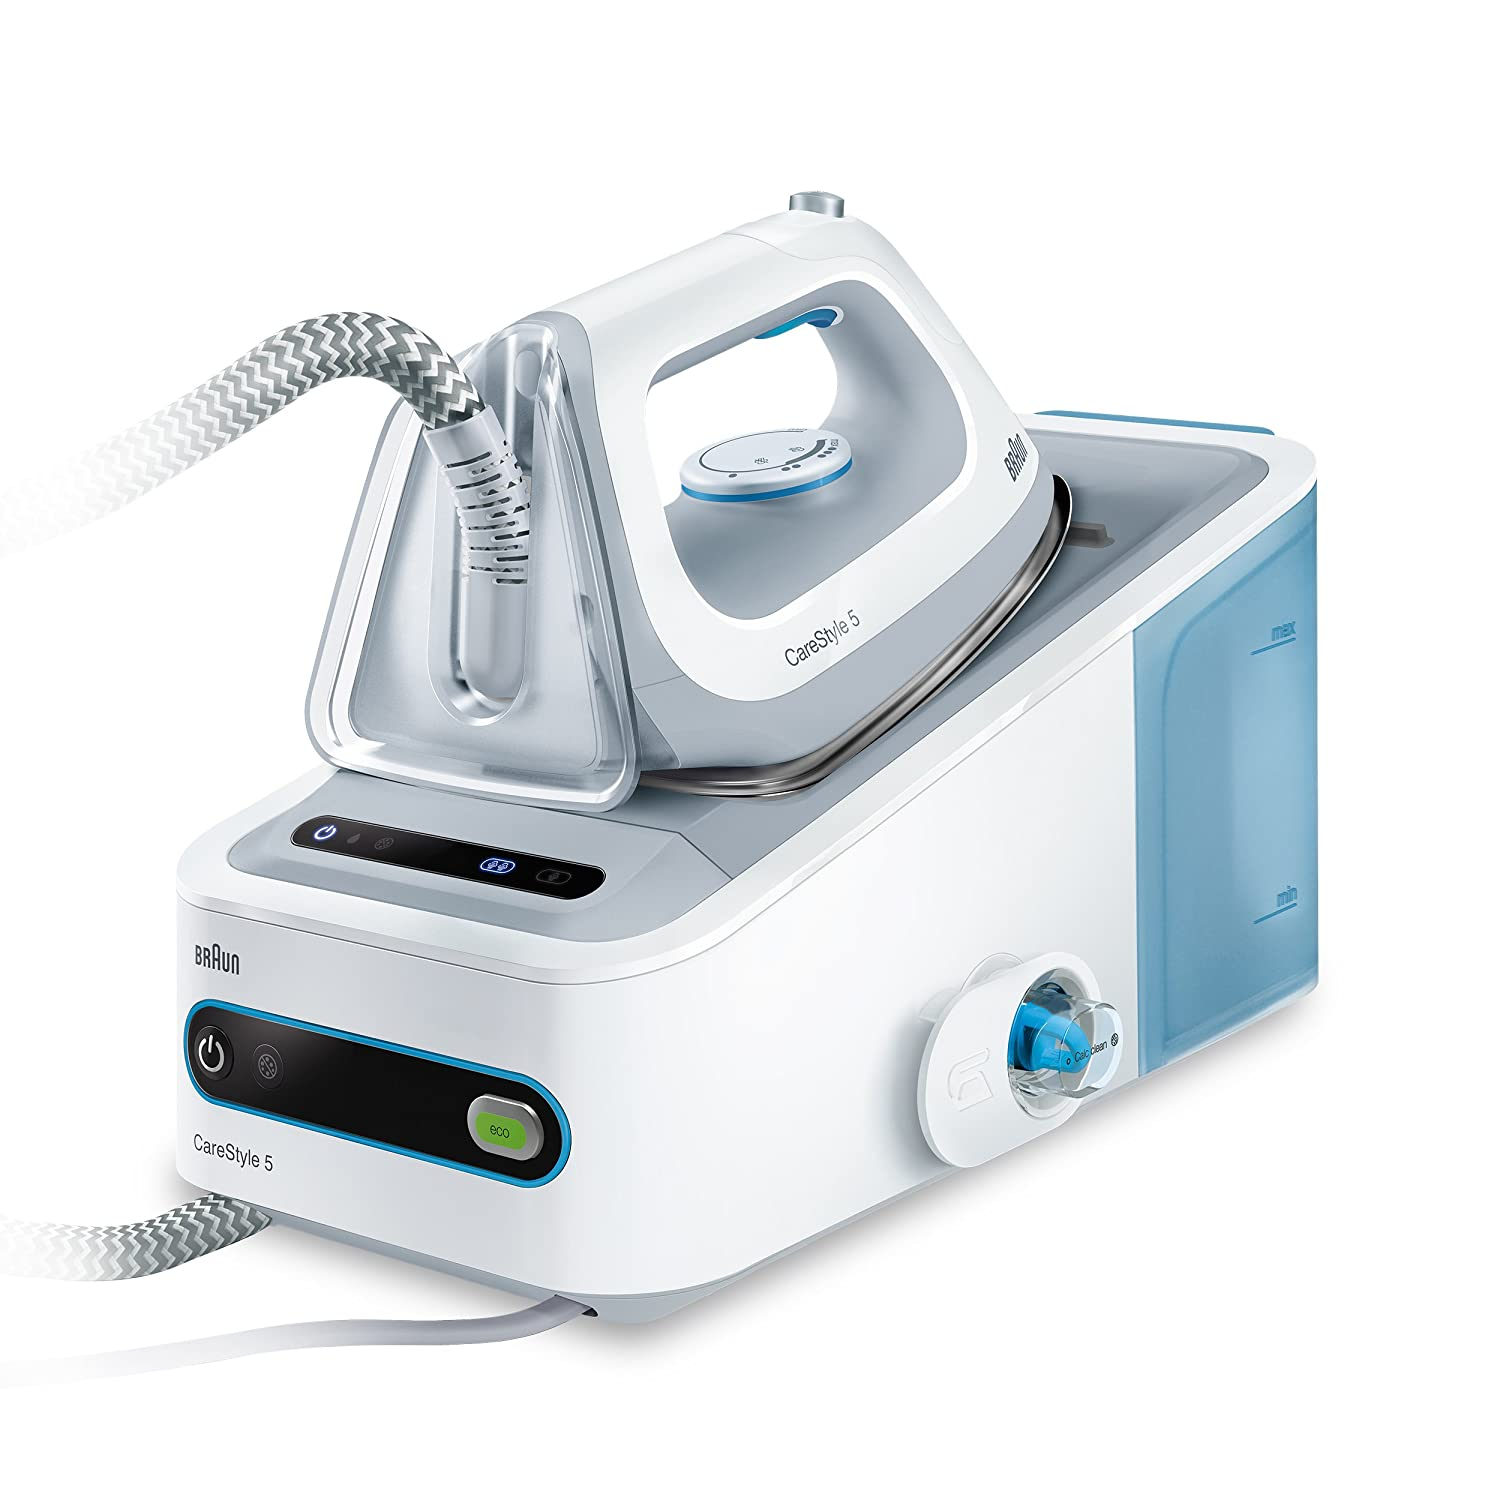 Braun IS5022 CareStyle 5 Eloxal 3D 2400W Steam Ironing System in ...